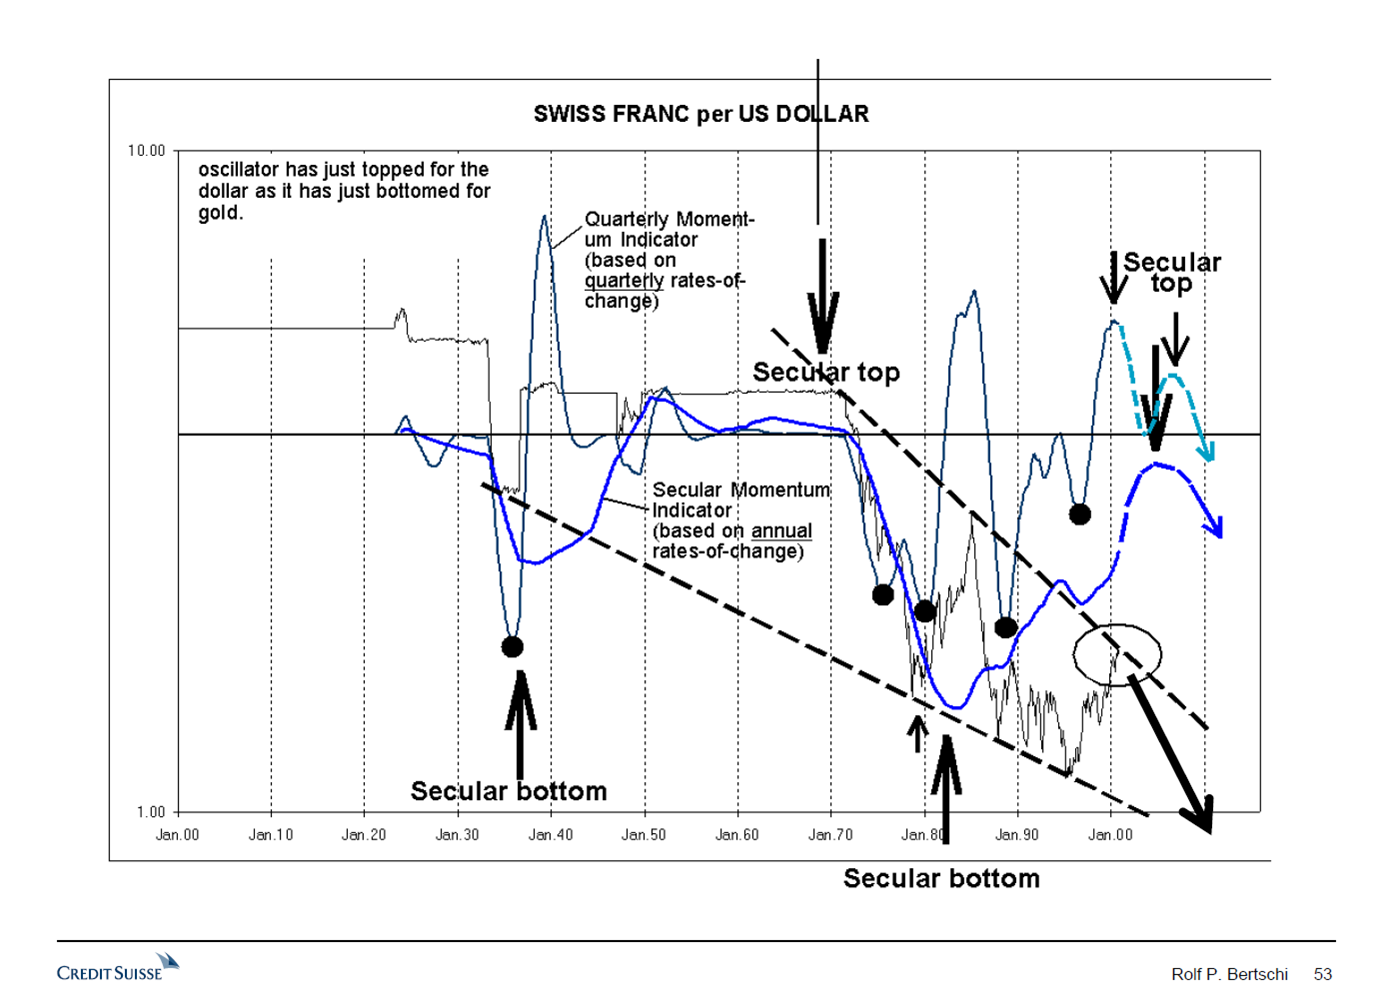 In 2001 I published my Long-term Chart Outlook for US Dollar / Swiss franc, trading at that time at 1.72. I did forcast that the US Dollar would decline over the coming decade to below parity and possibly to the lower end of the dashed downtrend line at around 80 Rappen. Following this forecast, over the years from 2001 to 2011 USD/CHF declined to 70 Rappen on 9th August 2011.